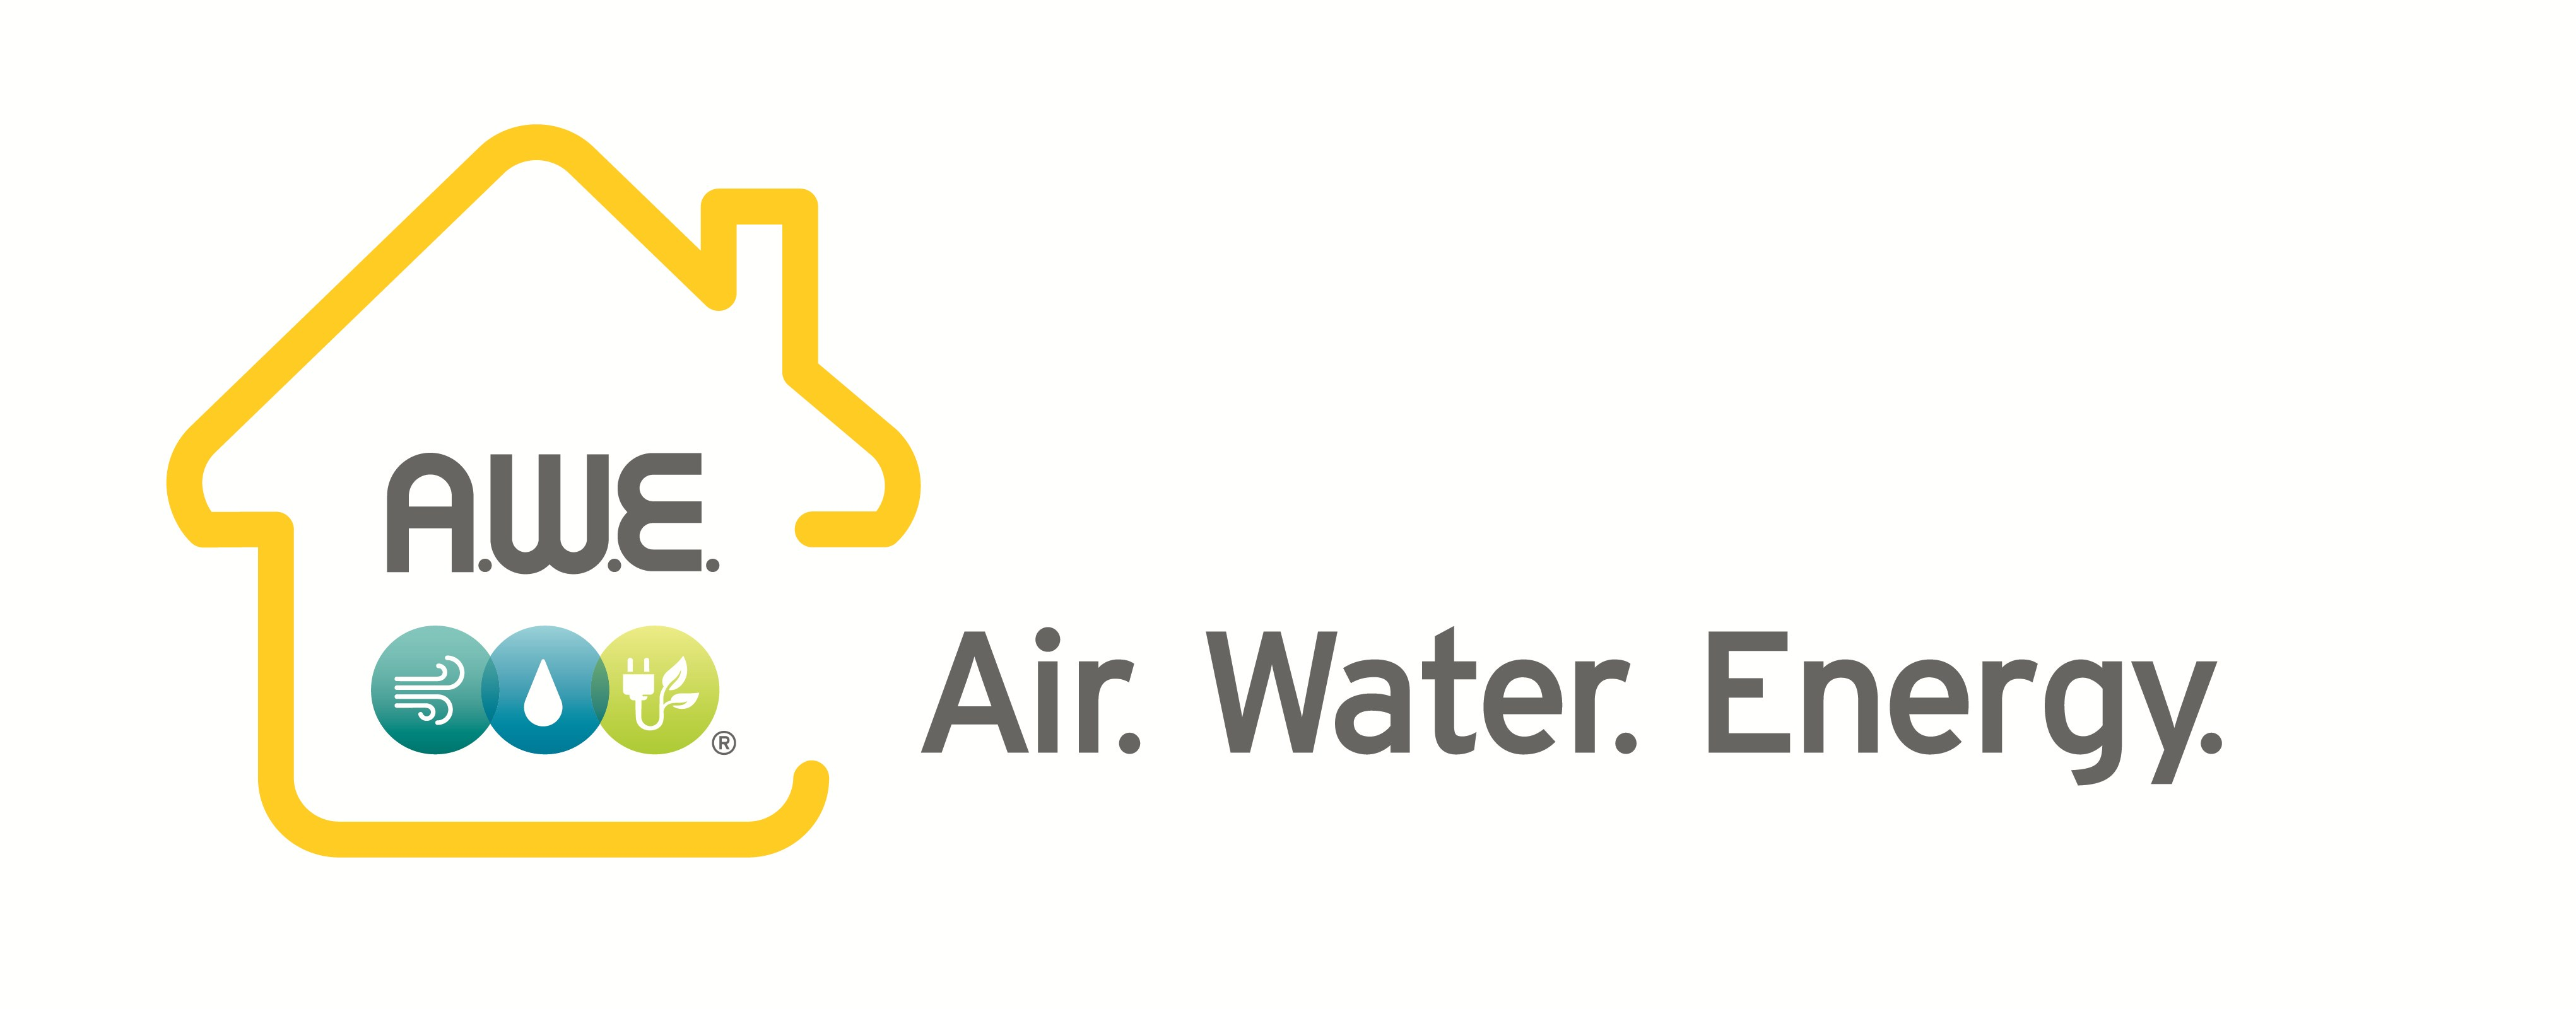 Awe Air Water Energy Reviews Carol Stream Il Angie S List